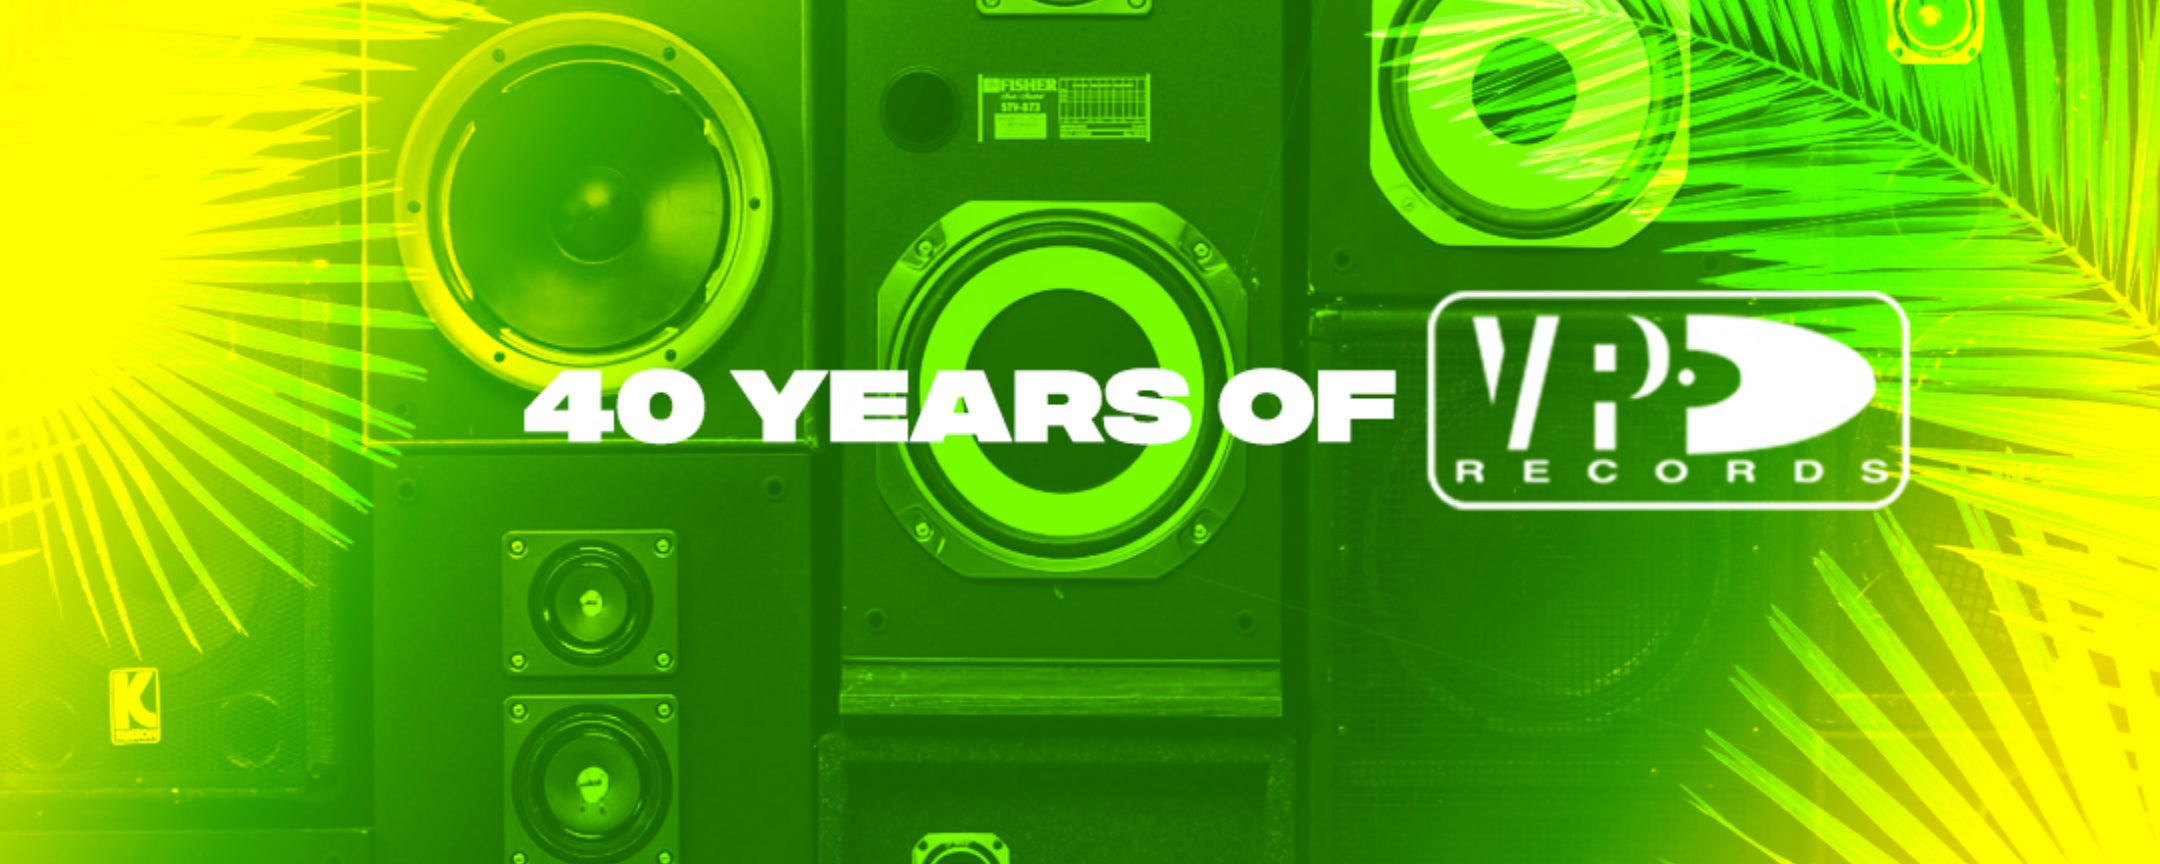 40 Years Of VP Records